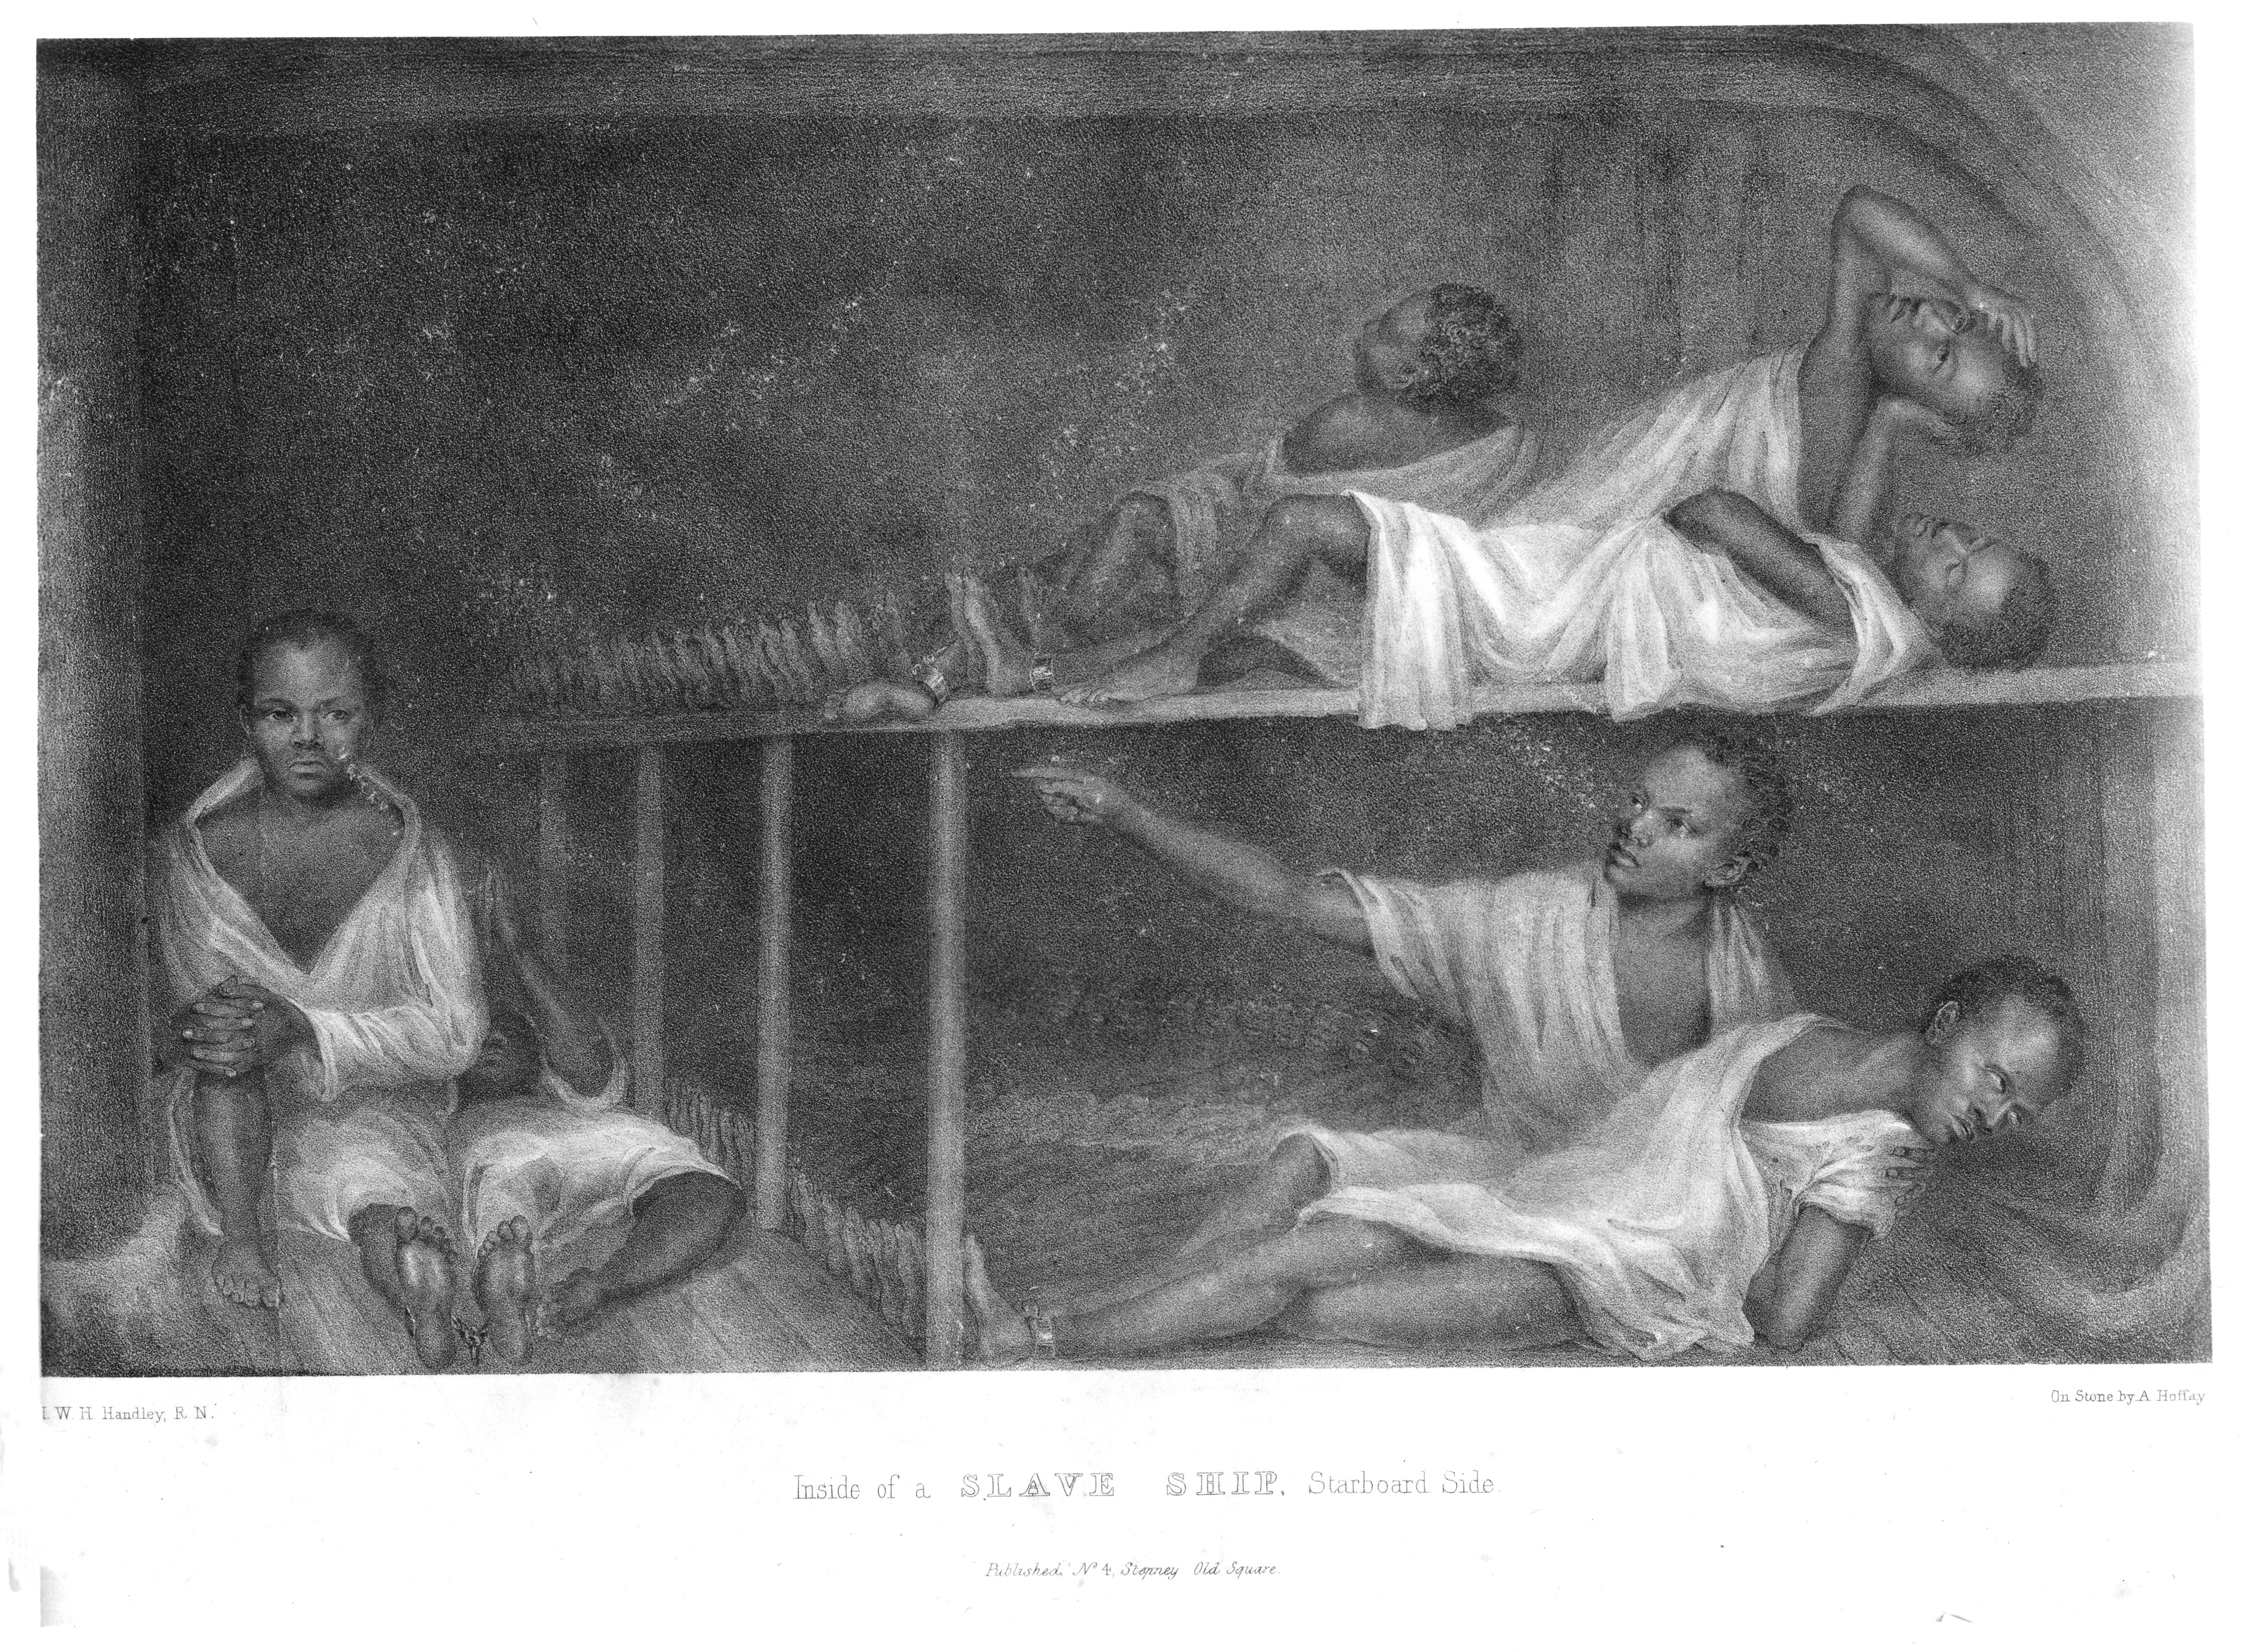 "There is a 19th century lithograph engraved by A. Hoffay from an original by I.W.H. Handley entitled ""Inside of a slave ship, starboard side.""  Little is known about this lithograph. It provides a very unrealistic representation, typical of much of the art of the era.